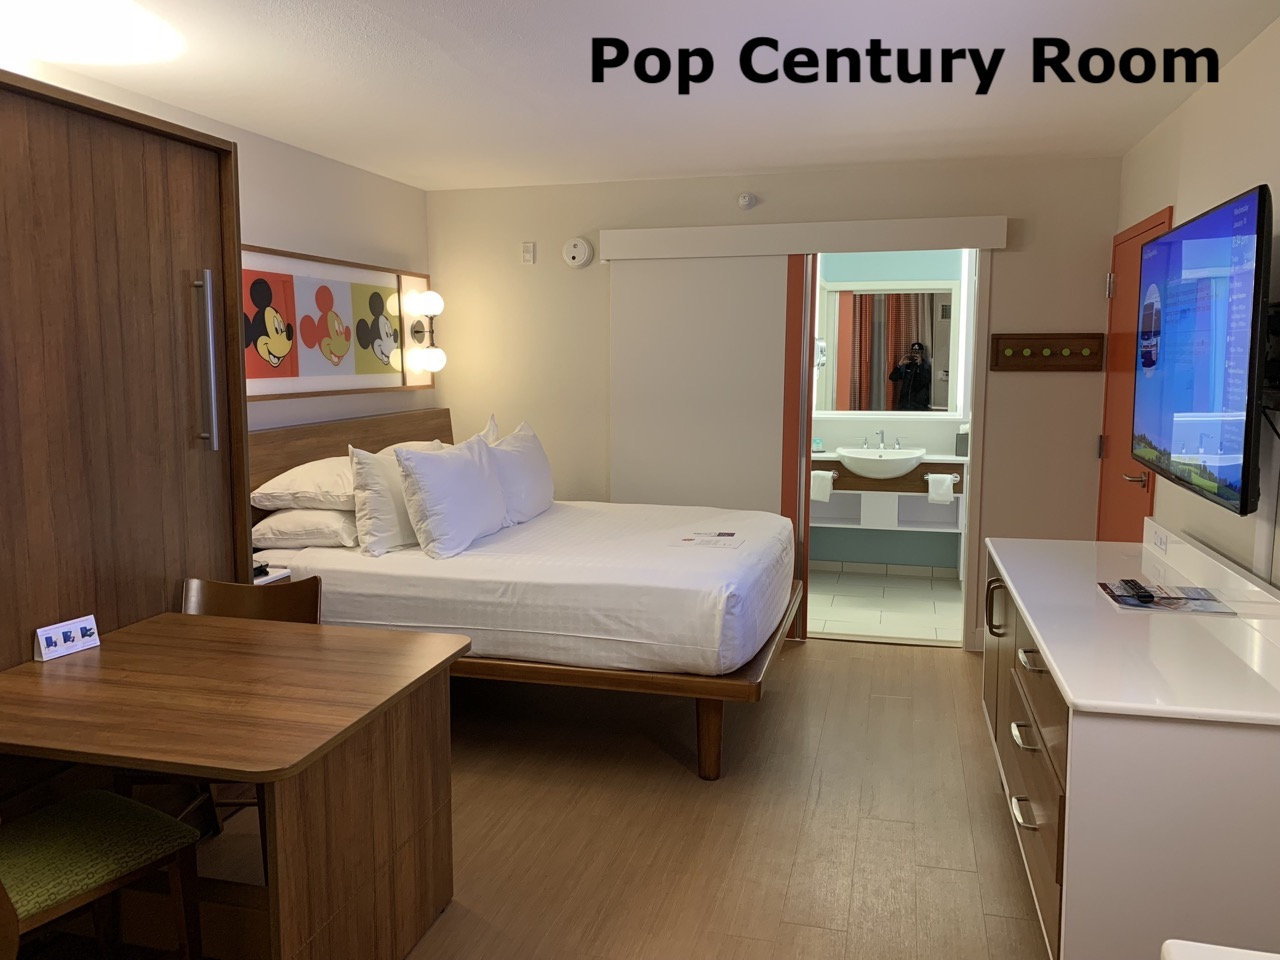 disney world best value resort hotels ranked 99 pop room copy.jpeg